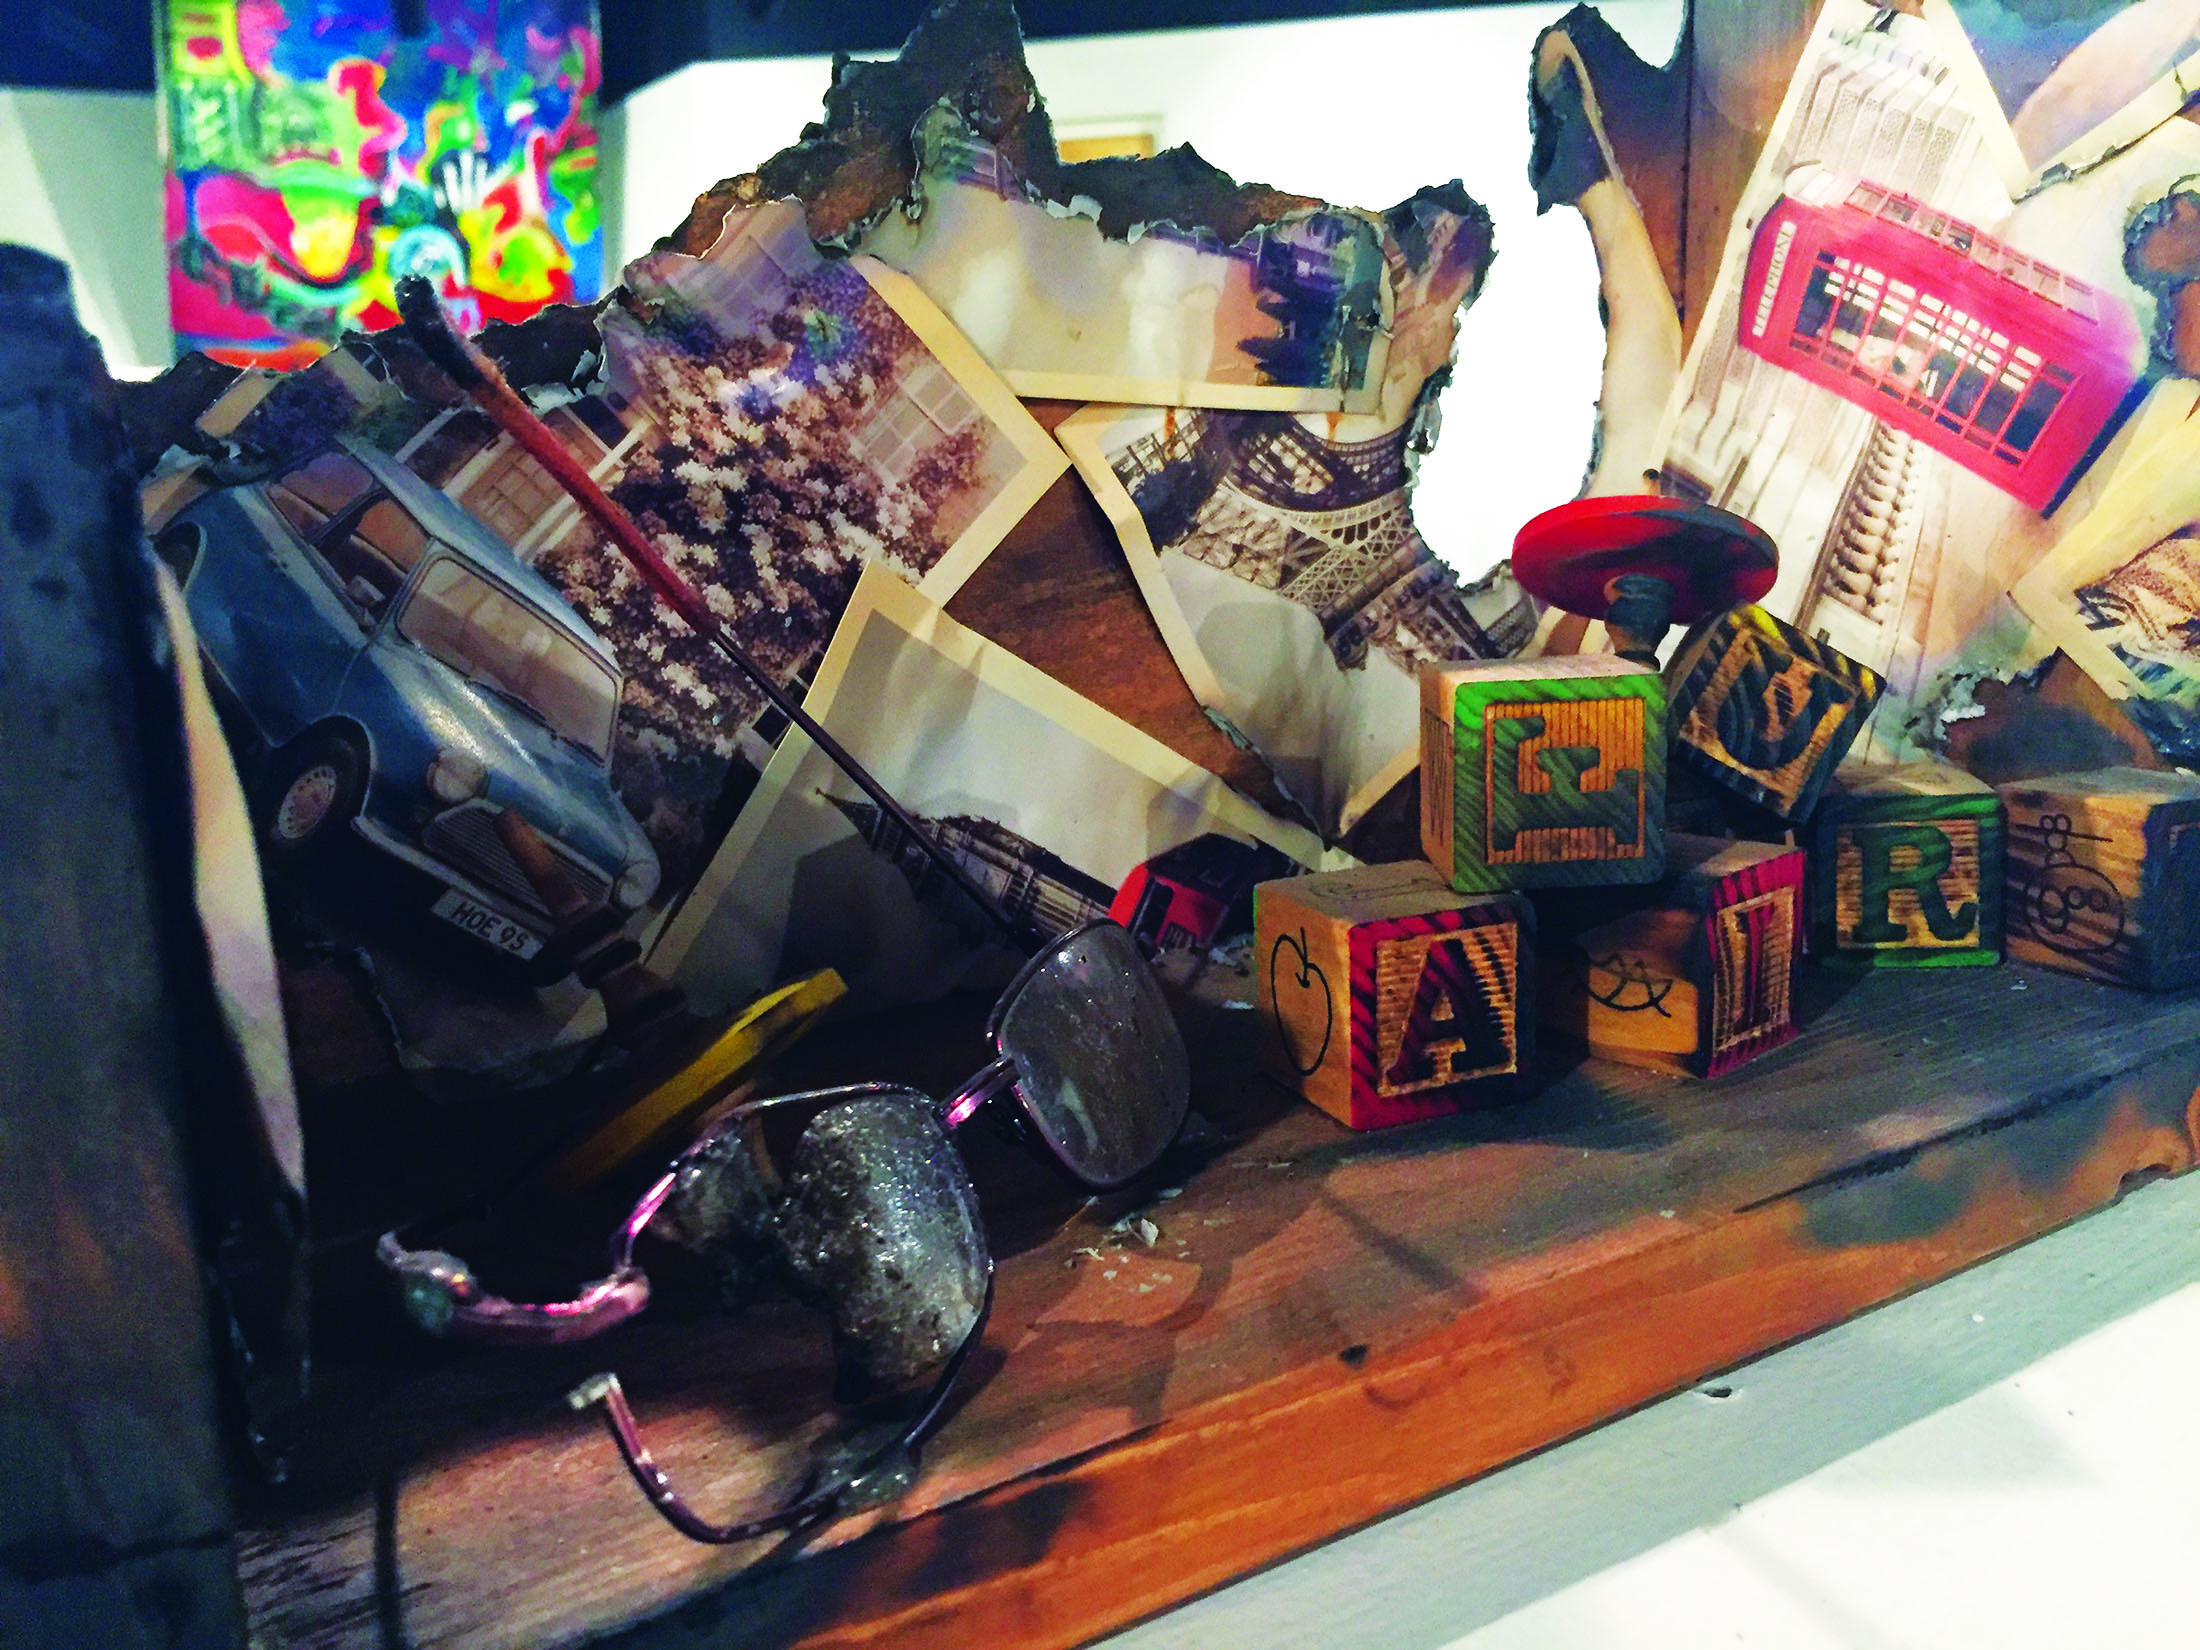 Student art exhibit 'Clusterfunk' carries largest collection yet